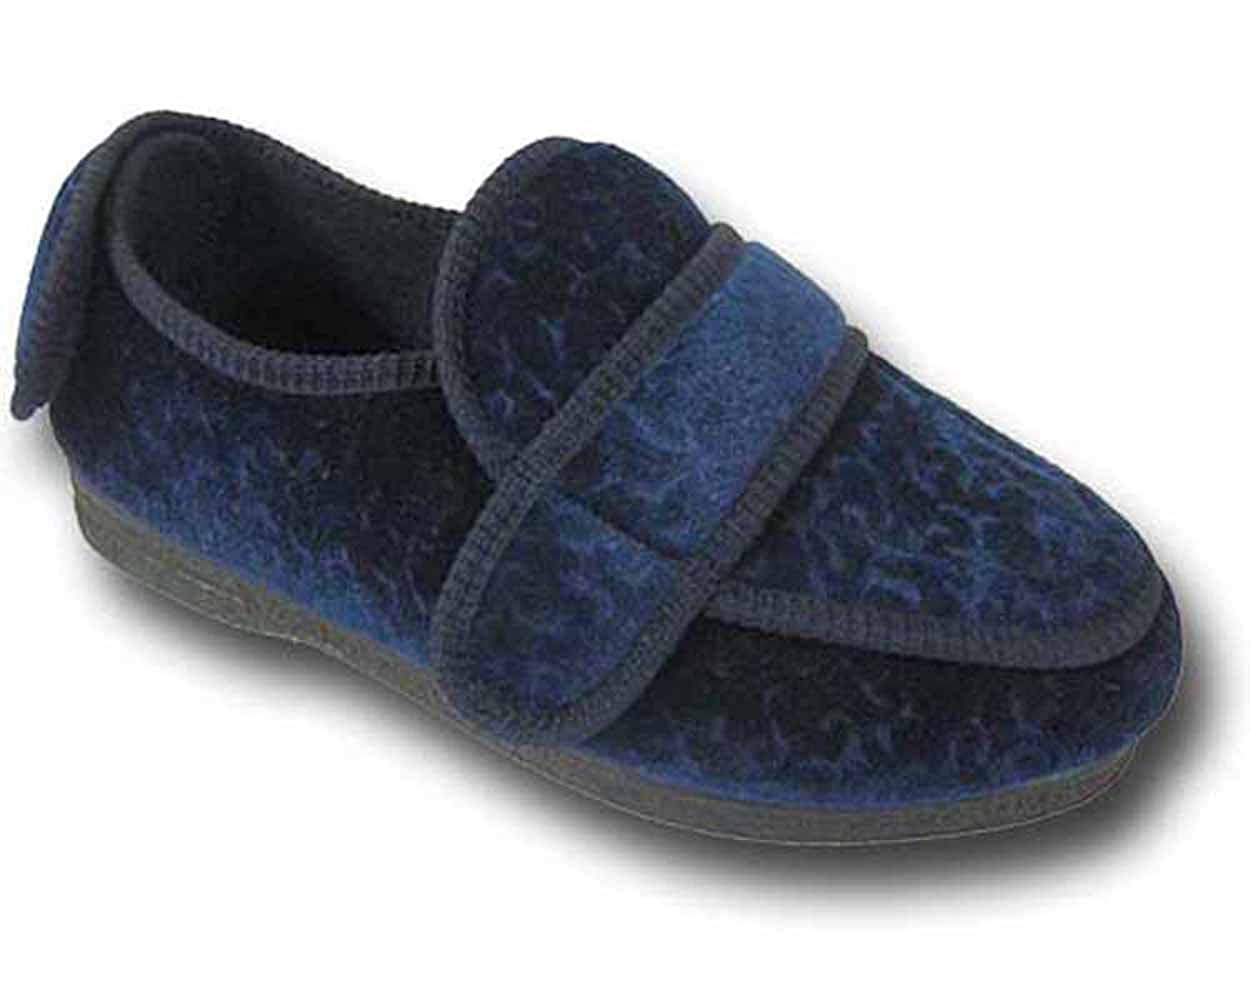 55831d3562d Coolers Womens BW27A Velcro Straps Wide Fit Orthopaedic Slippers   Amazon.co.uk  Shoes   Bags